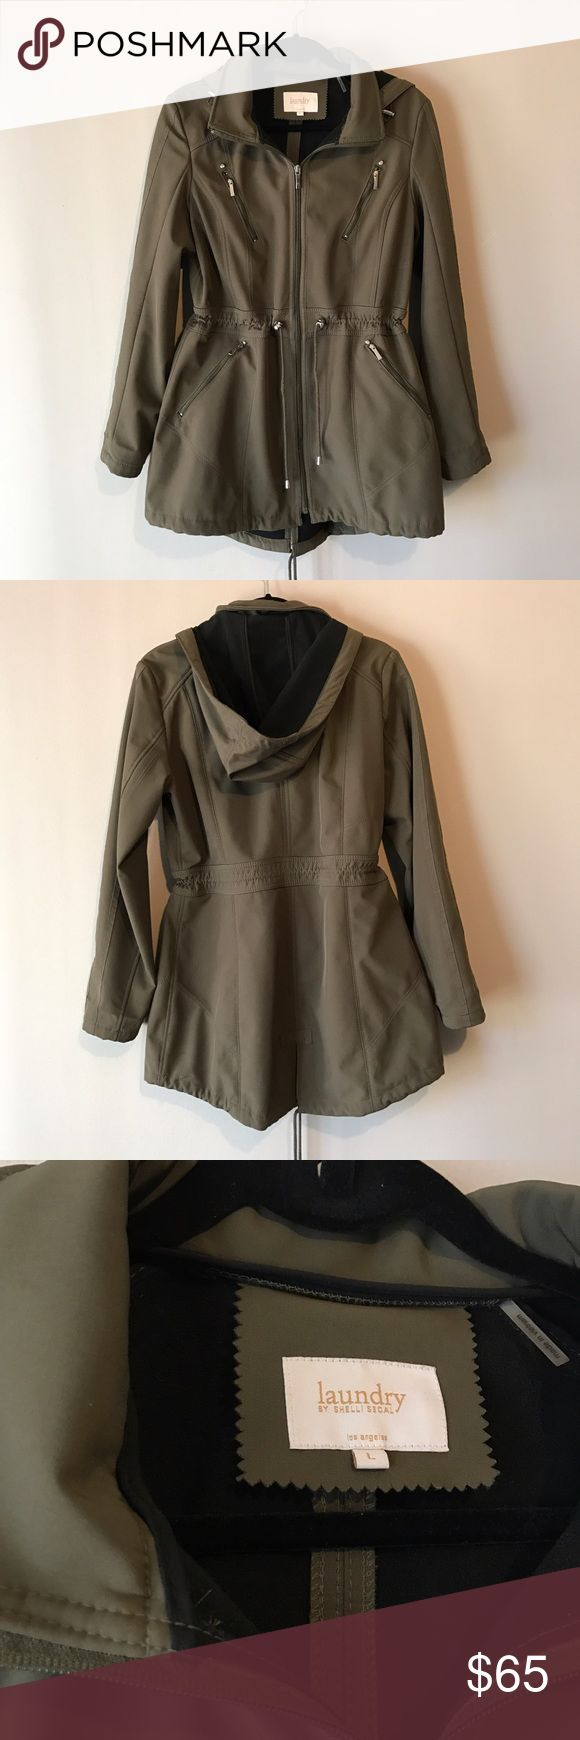 Zip Up Trench Coat Olive green colored zip up trench coat with removable hood, water resistant material & paneled lined interior. Lots of great details (see pics) - crystals, zippers at all 4 pockets, & adjustable cinching at the waist, hood & hem. Got this when I was larger during pregnancy but now it's too big on me. Material not too thick or thin - great for transitioning into Spring! In excellent condition and well structured! As always, all reasonable offers are welcome. Let me know if…